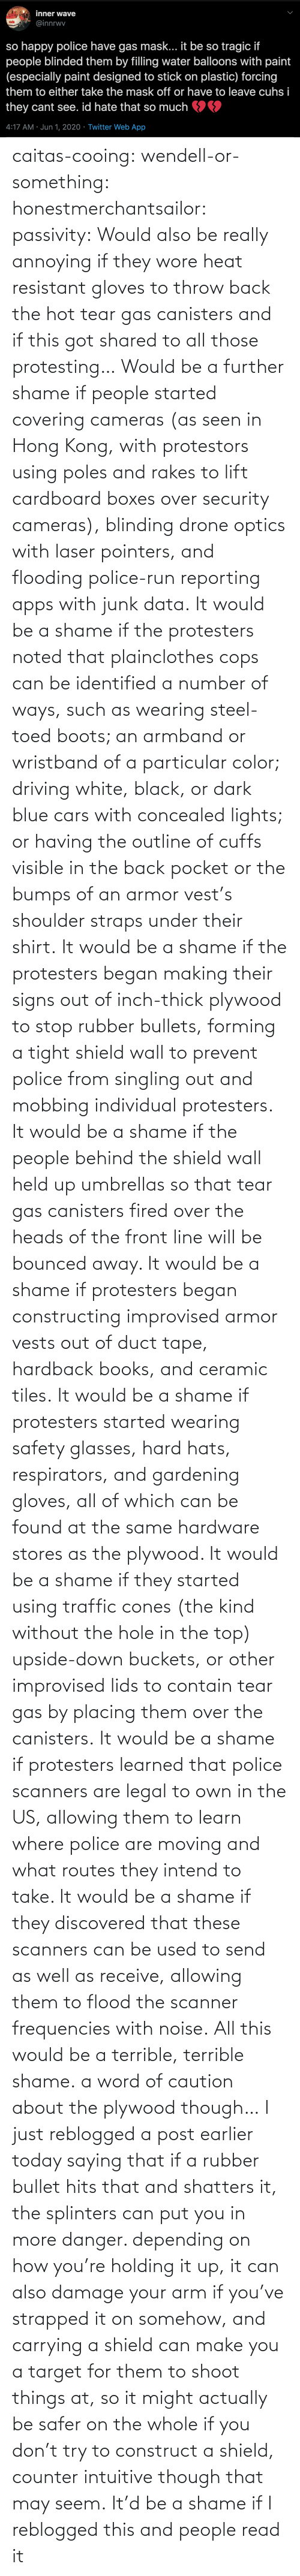 The People: caitas-cooing:  wendell-or-something: honestmerchantsailor:  passivity: Would also be really annoying if they wore heat resistant gloves to throw back the hot tear gas canisters and if this got shared to all those protesting… Would be a further shame if people started covering cameras (as seen in Hong Kong, with protestors using poles and rakes to lift cardboard boxes over security cameras), blinding drone optics with laser pointers, and flooding police-run reporting apps with junk data. It would be a shame if the protesters noted that plainclothes cops can be identified a number of ways, such as wearing steel-toed boots; an armband or wristband of a particular color; driving white, black, or dark blue cars with concealed lights; or having the outline of cuffs visible in the back pocket or the bumps of an armor vest's shoulder straps under their shirt. It would be a shame if the protesters began making their signs out of inch-thick plywood to stop rubber bullets, forming a tight shield wall to prevent police from singling out and mobbing individual protesters. It would be a shame if the people behind the shield wall held up umbrellas so that tear gas canisters fired over the heads of the front line will be bounced away. It would be a shame if protesters began constructing improvised armor vests out of duct tape, hardback books, and ceramic tiles. It would be a shame if protesters started wearing safety glasses, hard hats, respirators, and gardening gloves, all of which can be found at the same hardware stores as the plywood. It would be a shame if they started using traffic cones (the kind without the hole in the top) upside-down buckets, or other improvised lids to contain tear gas by placing them over the canisters. It would be a shame if protesters learned that police scanners are legal to own in the US, allowing them to learn where police are moving and what routes they intend to take. It would be a shame if they discovered that these scanners can be used to send as well as receive, allowing them to flood the scanner frequencies with noise. All this would be a terrible, terrible shame.    a word of caution about the plywood though… I just reblogged a post earlier today saying that if a rubber bullet hits that and shatters it, the splinters can put you in more danger. depending on how you're holding it up, it can also damage your arm if you've strapped it on somehow, and carrying a shield can make you a target for them to shoot things at, so it might actually be safer on the whole if you don't try to construct a shield, counter intuitive though that may seem.    It'd be a shame if I reblogged this and people read it